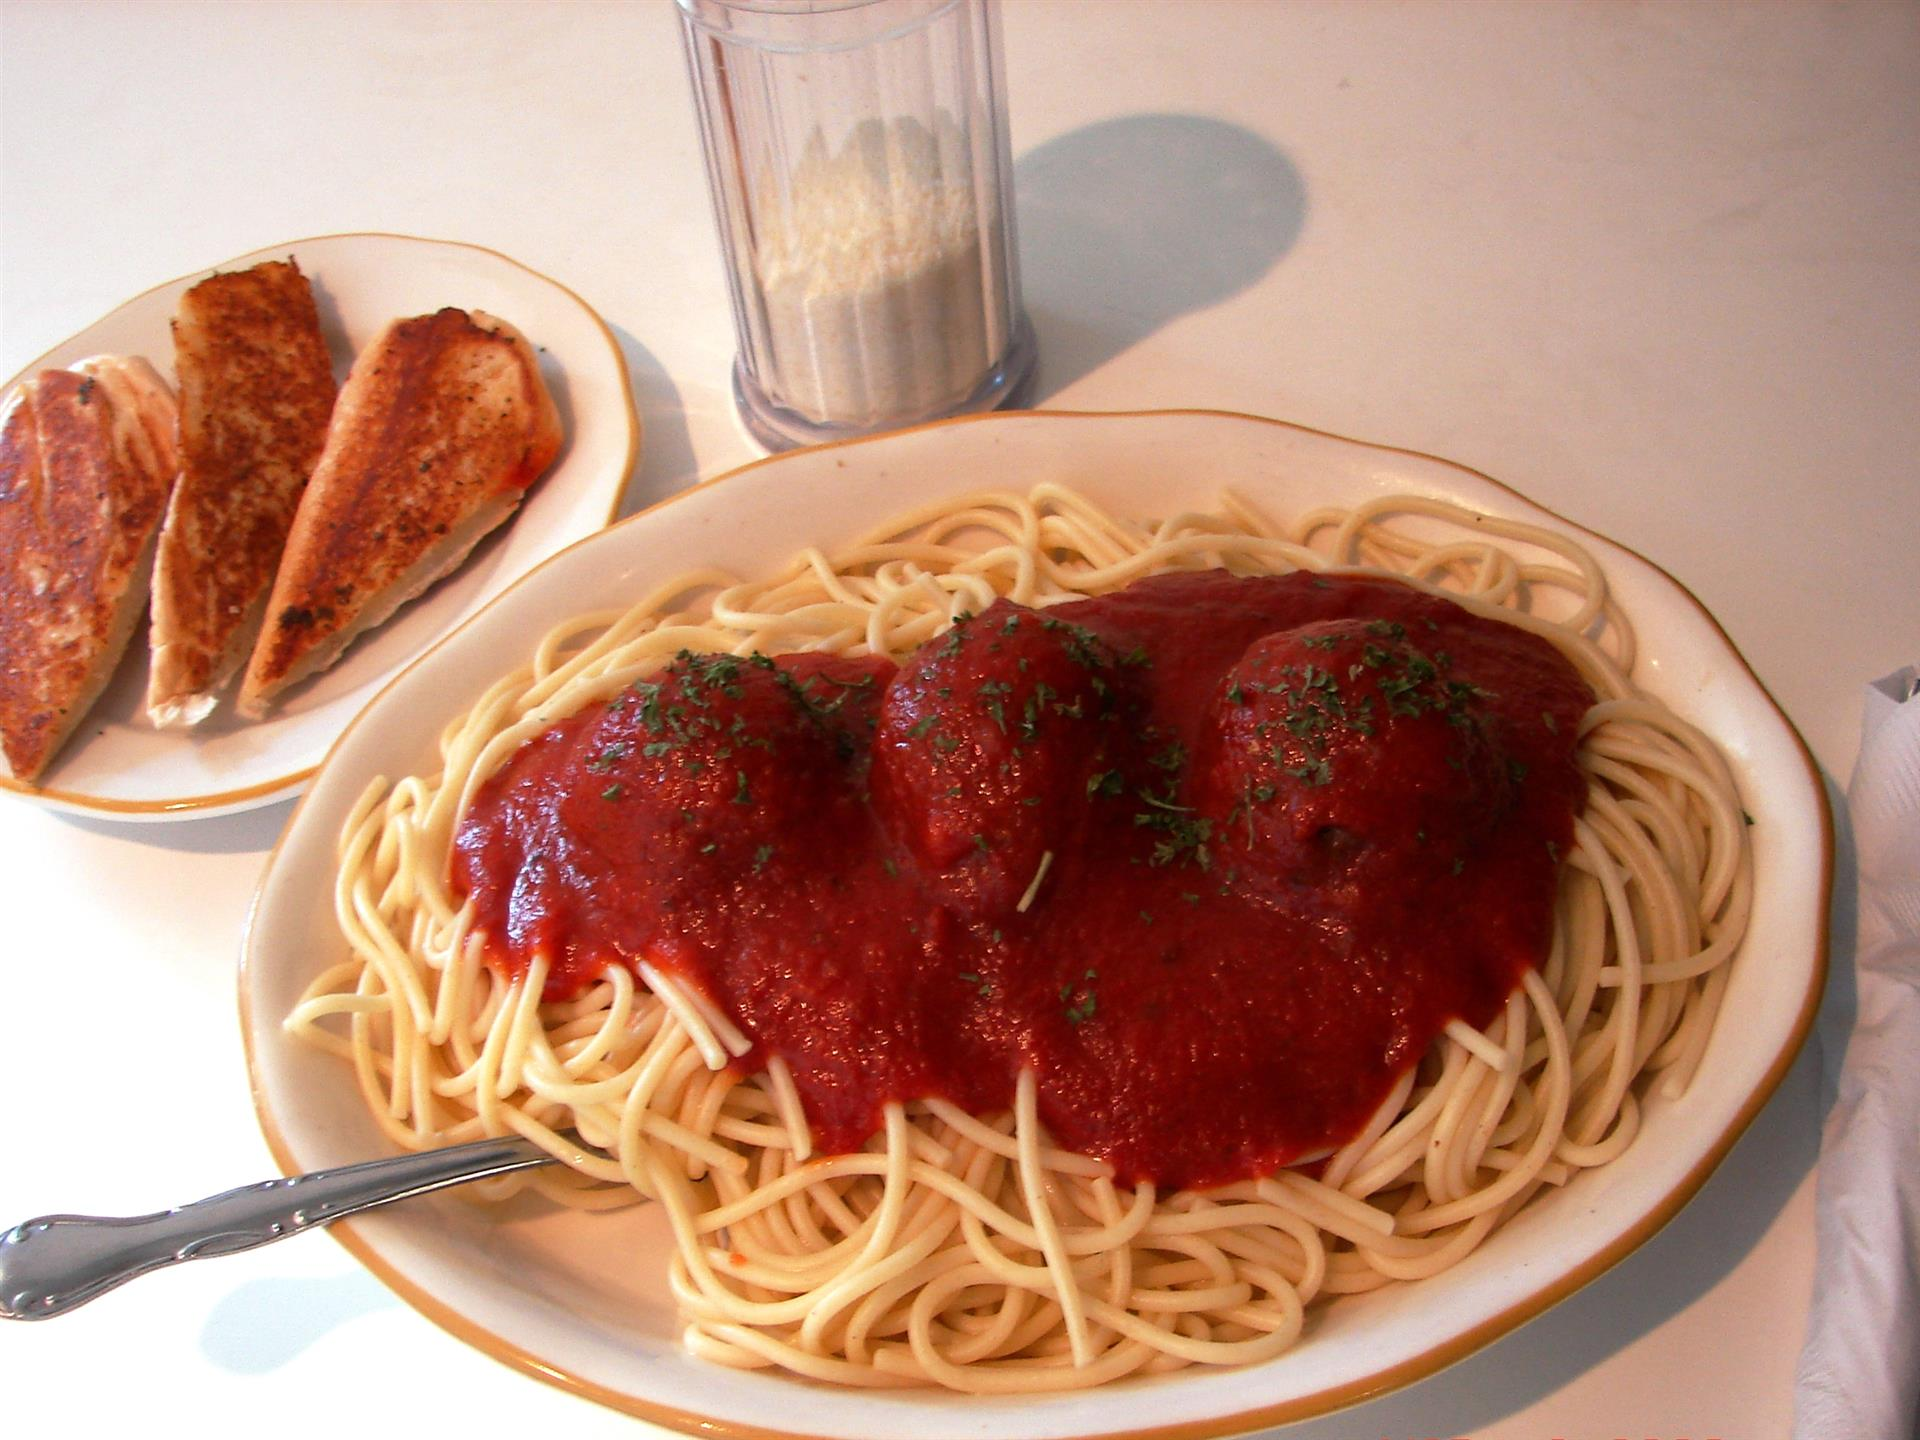 Spaghetti with meatballs on white dish with side of bread.